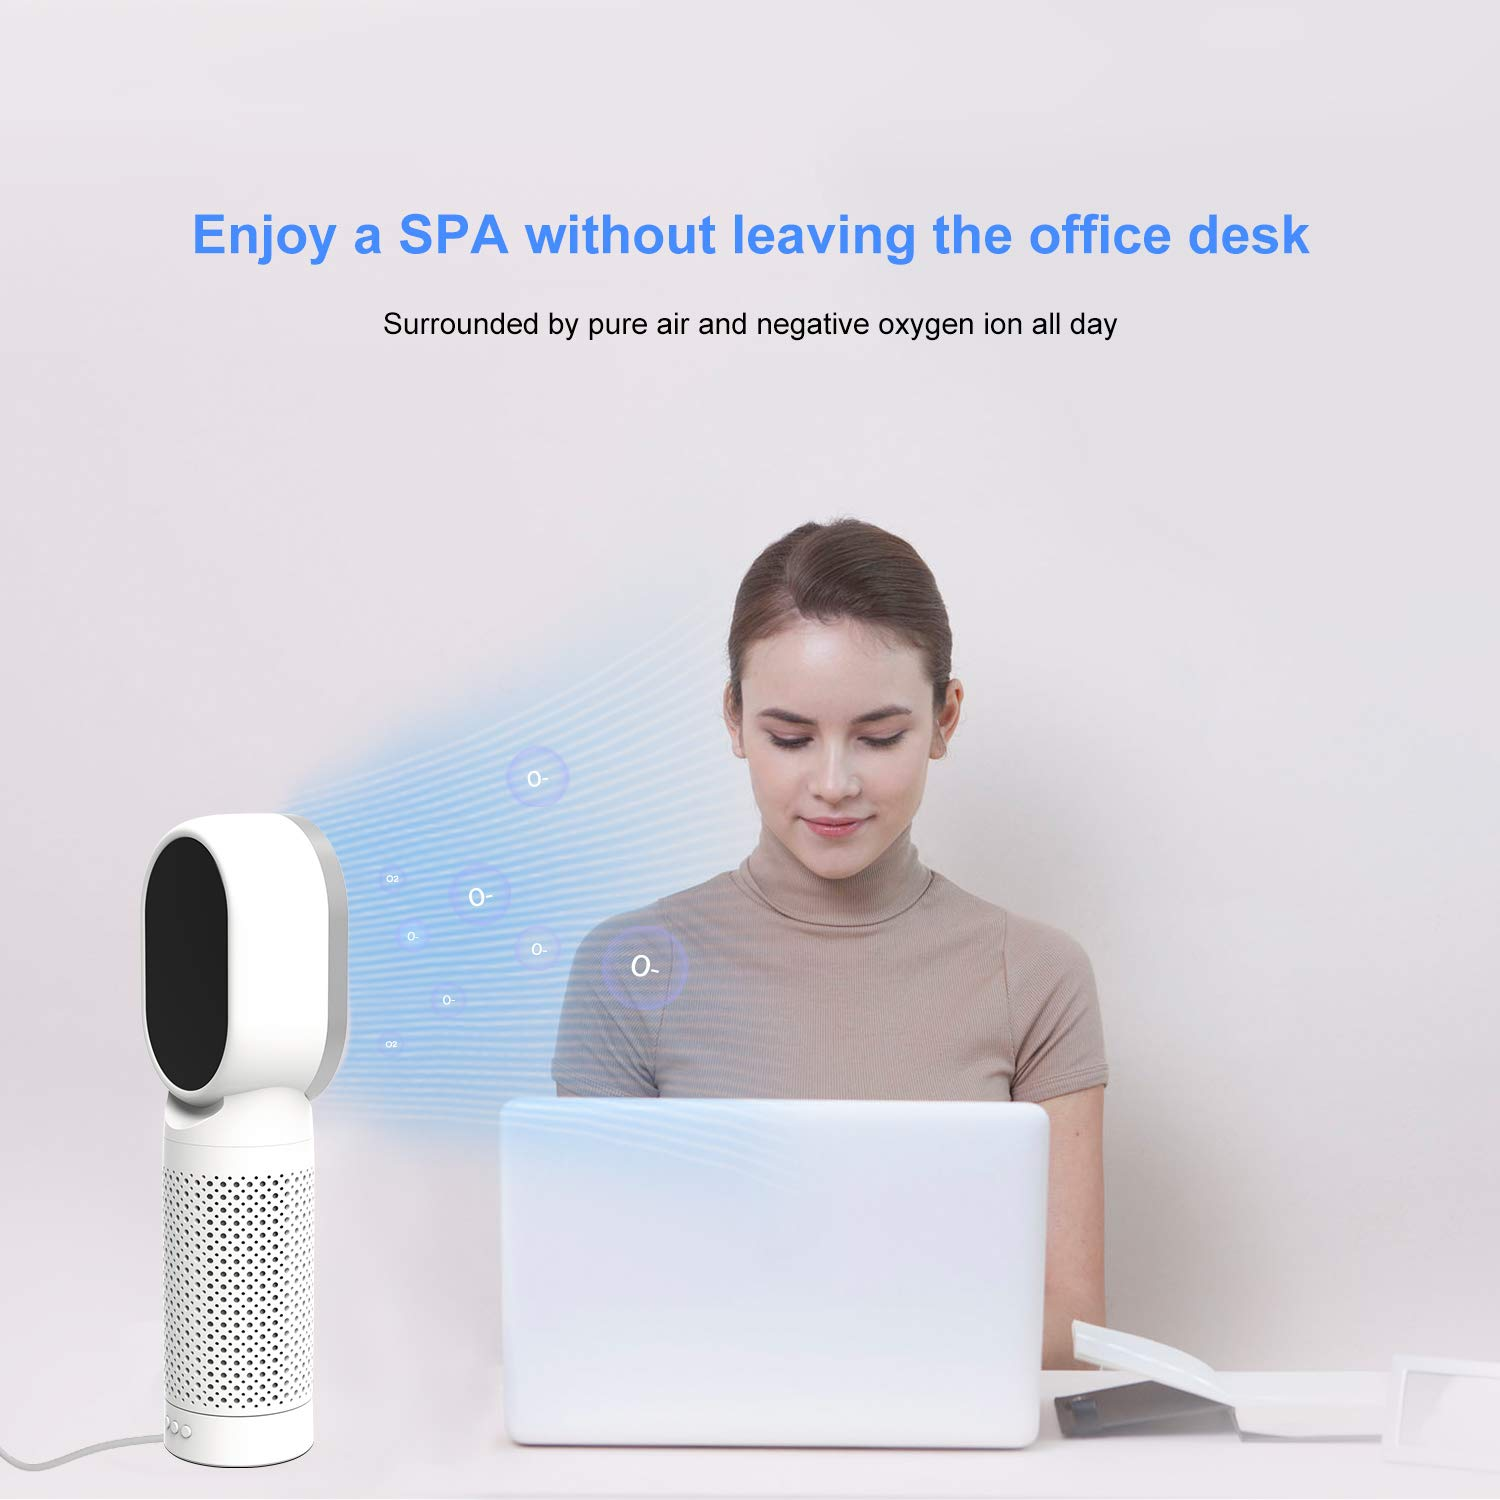 QUEENTY Desktop Air Cleaner with True HEPA Filter - Portable Air Purifier Odor Allergies Eliminator for Smoke, Dust, Bedroom, Home, Office and Pets (White)